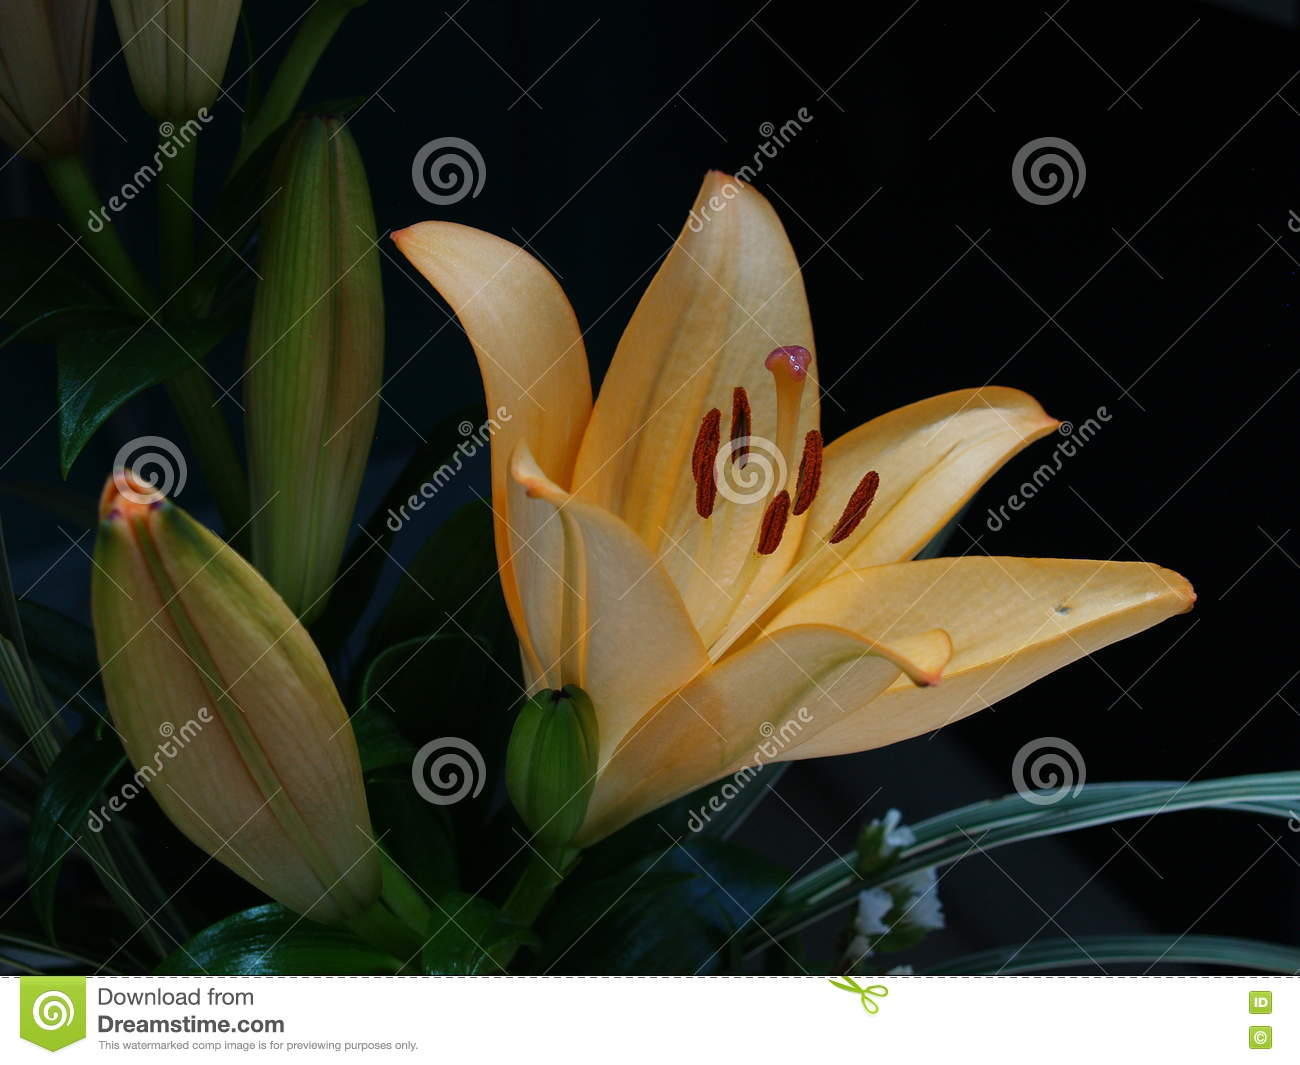 Zephyranthes lily flower common names for species in this genus zephyranthes lily flower common names for species in this genus include fairy rainflower izmirmasajfo